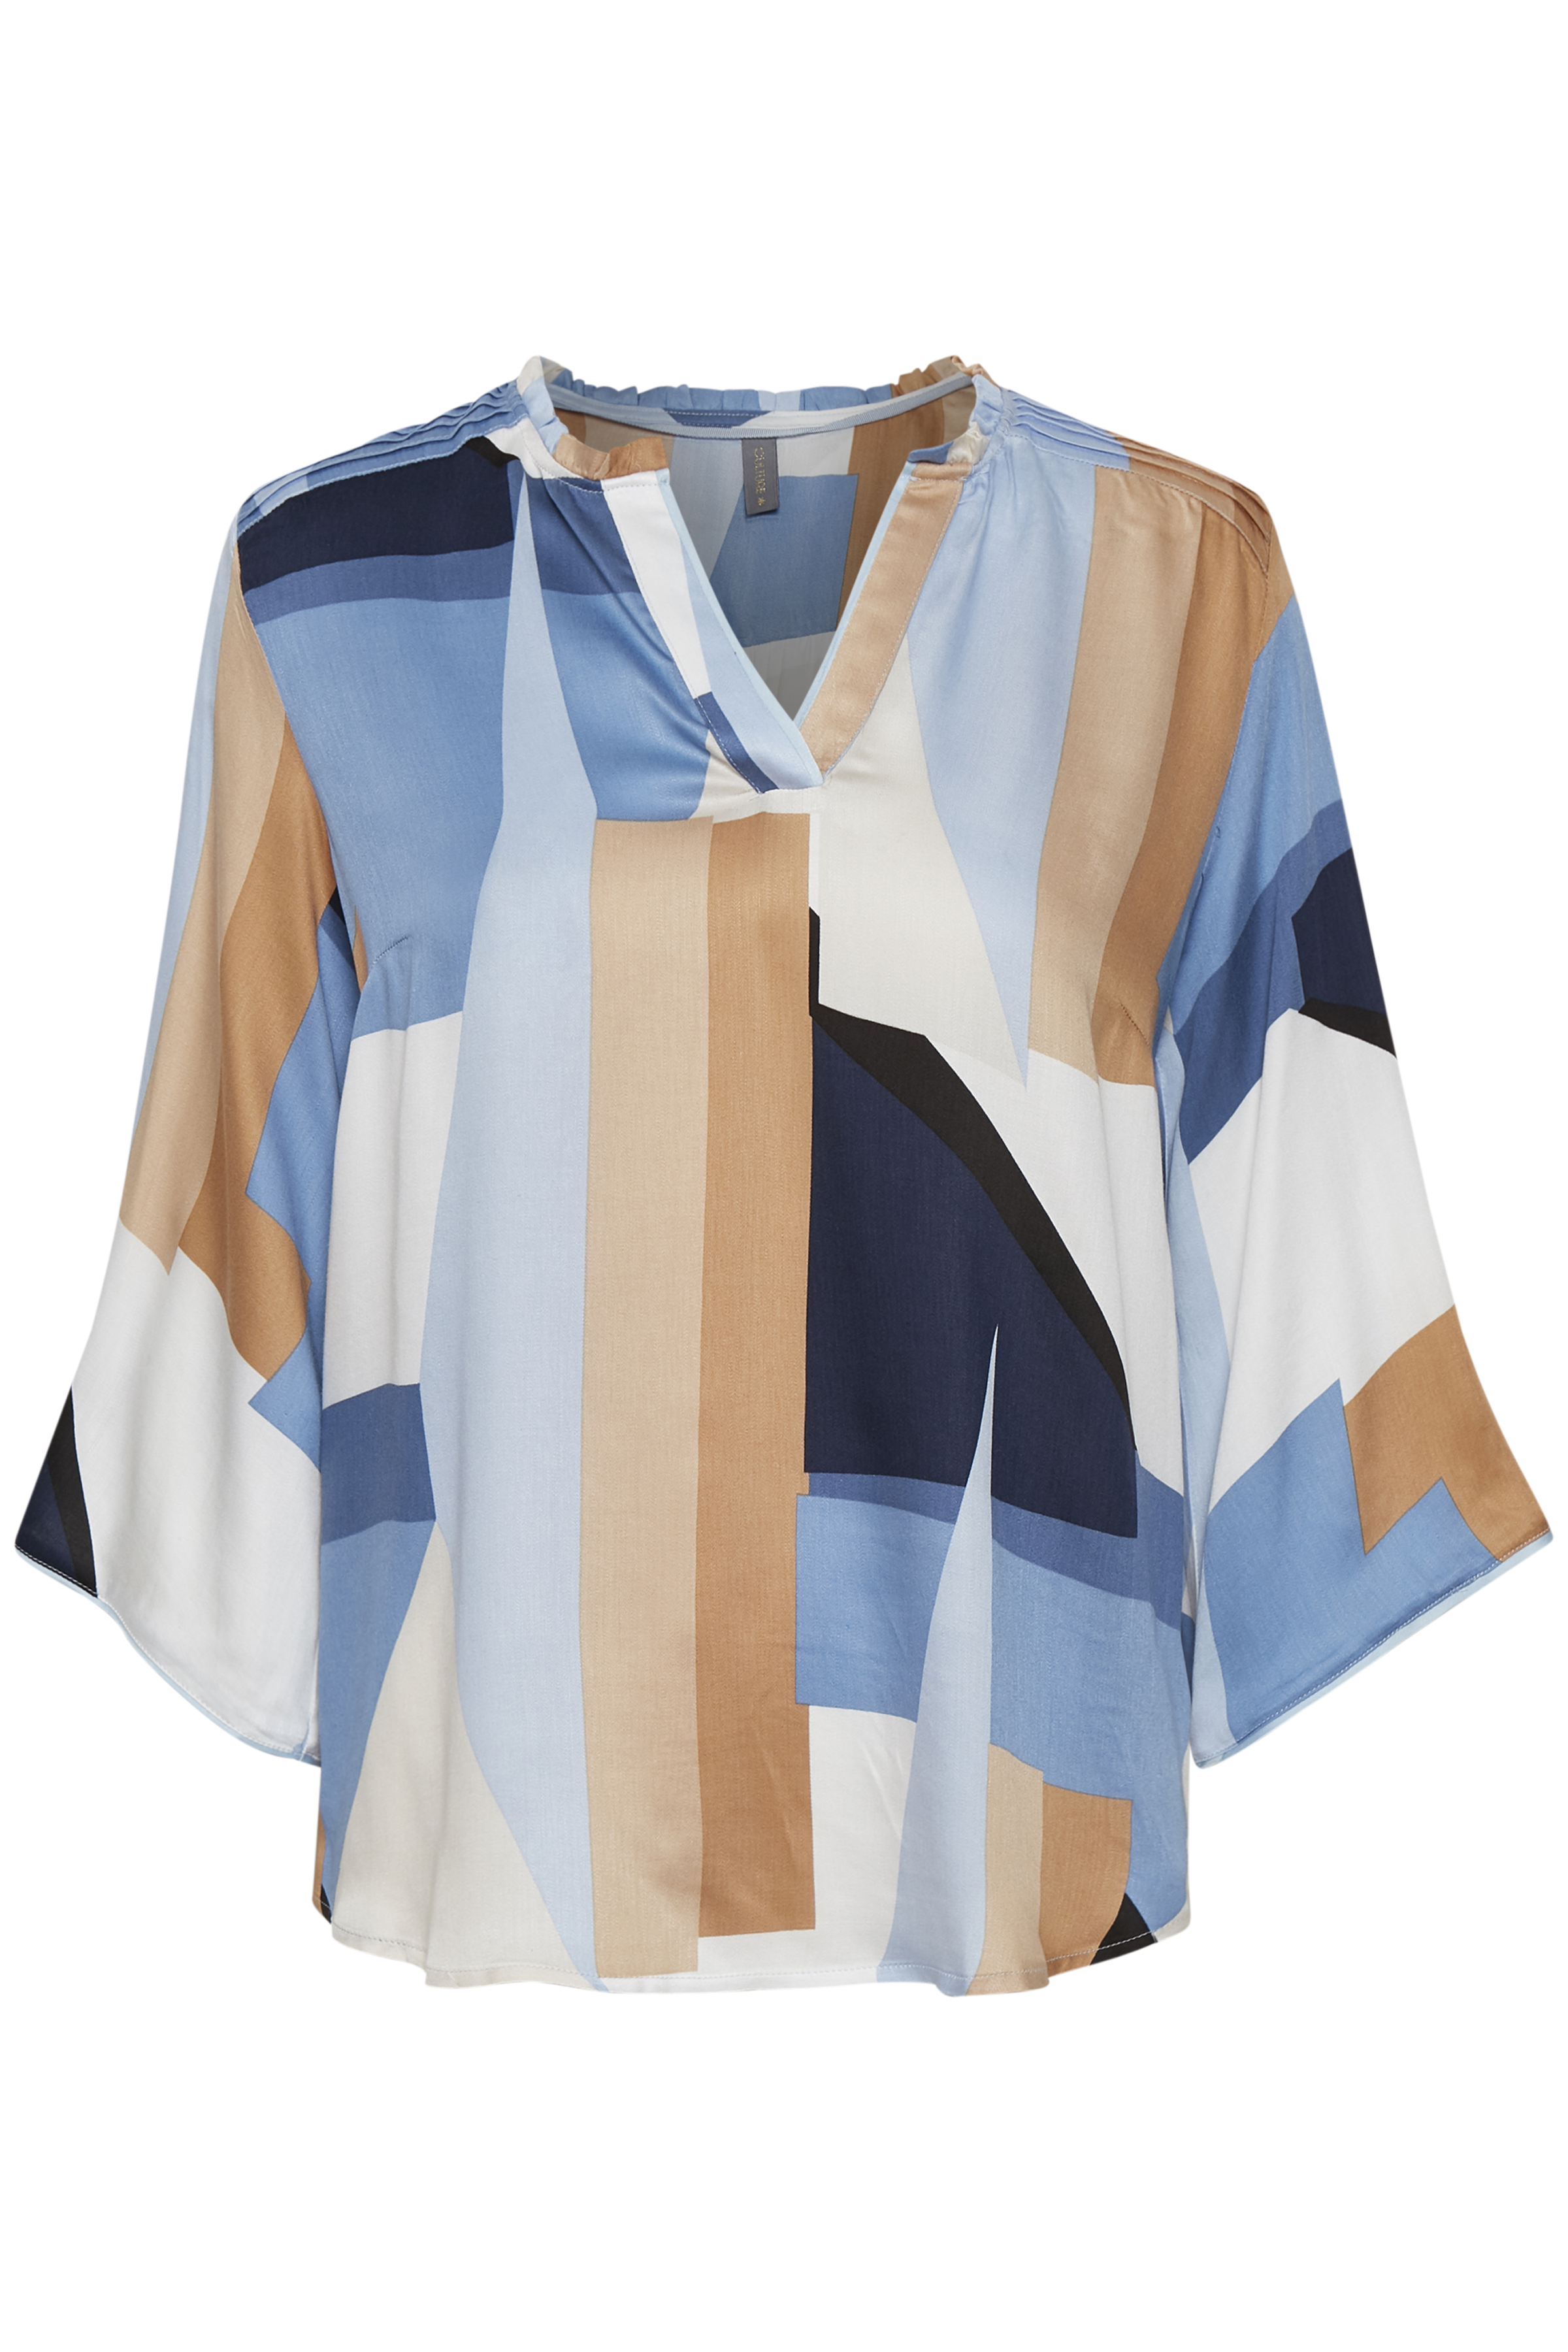 Image of Culture Dame Bluse - Cashmere Blue